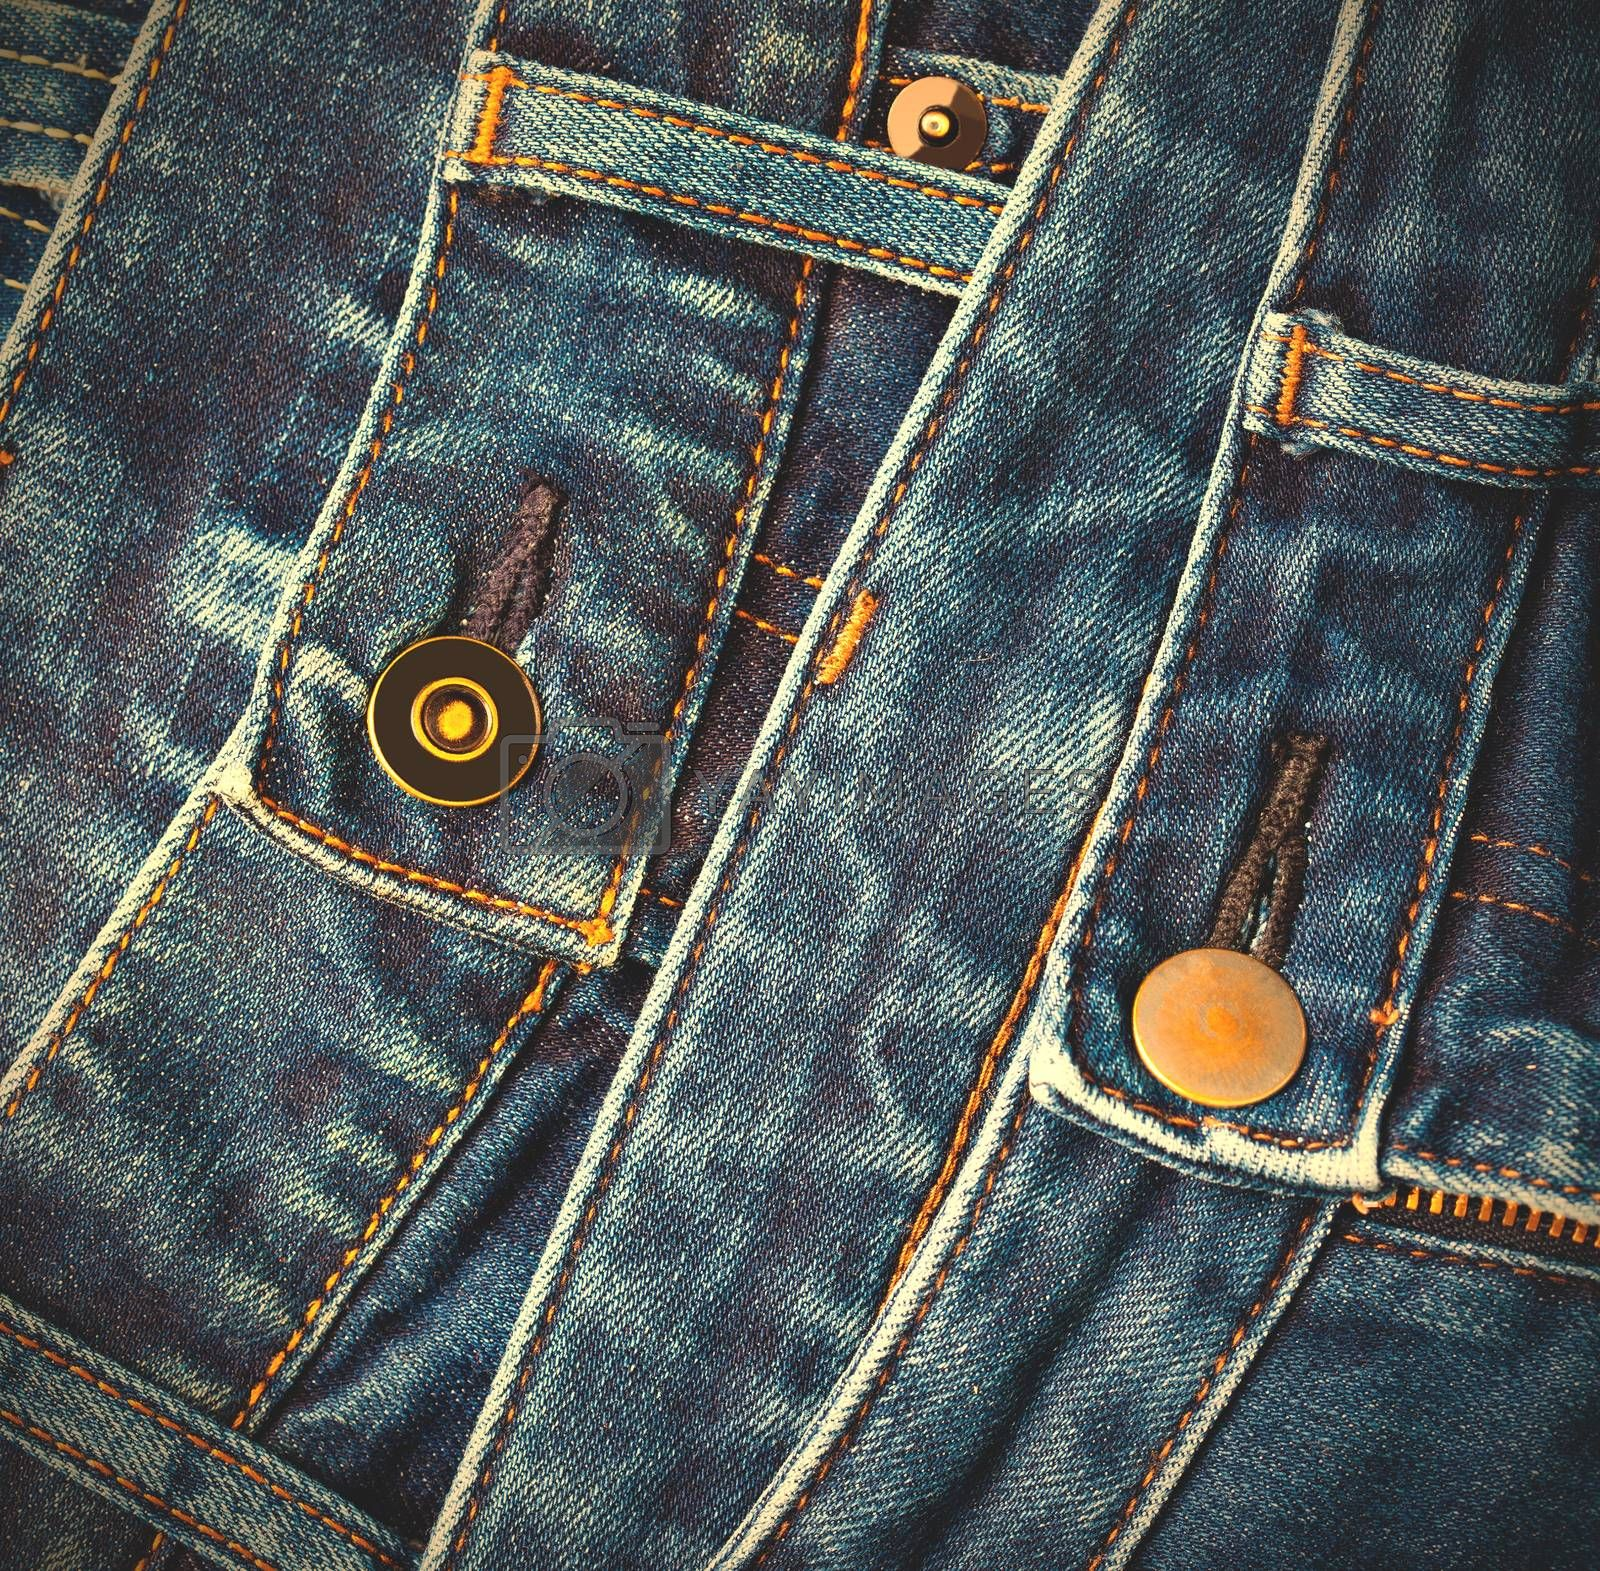 fashion blue jeans in stack, instagram image style